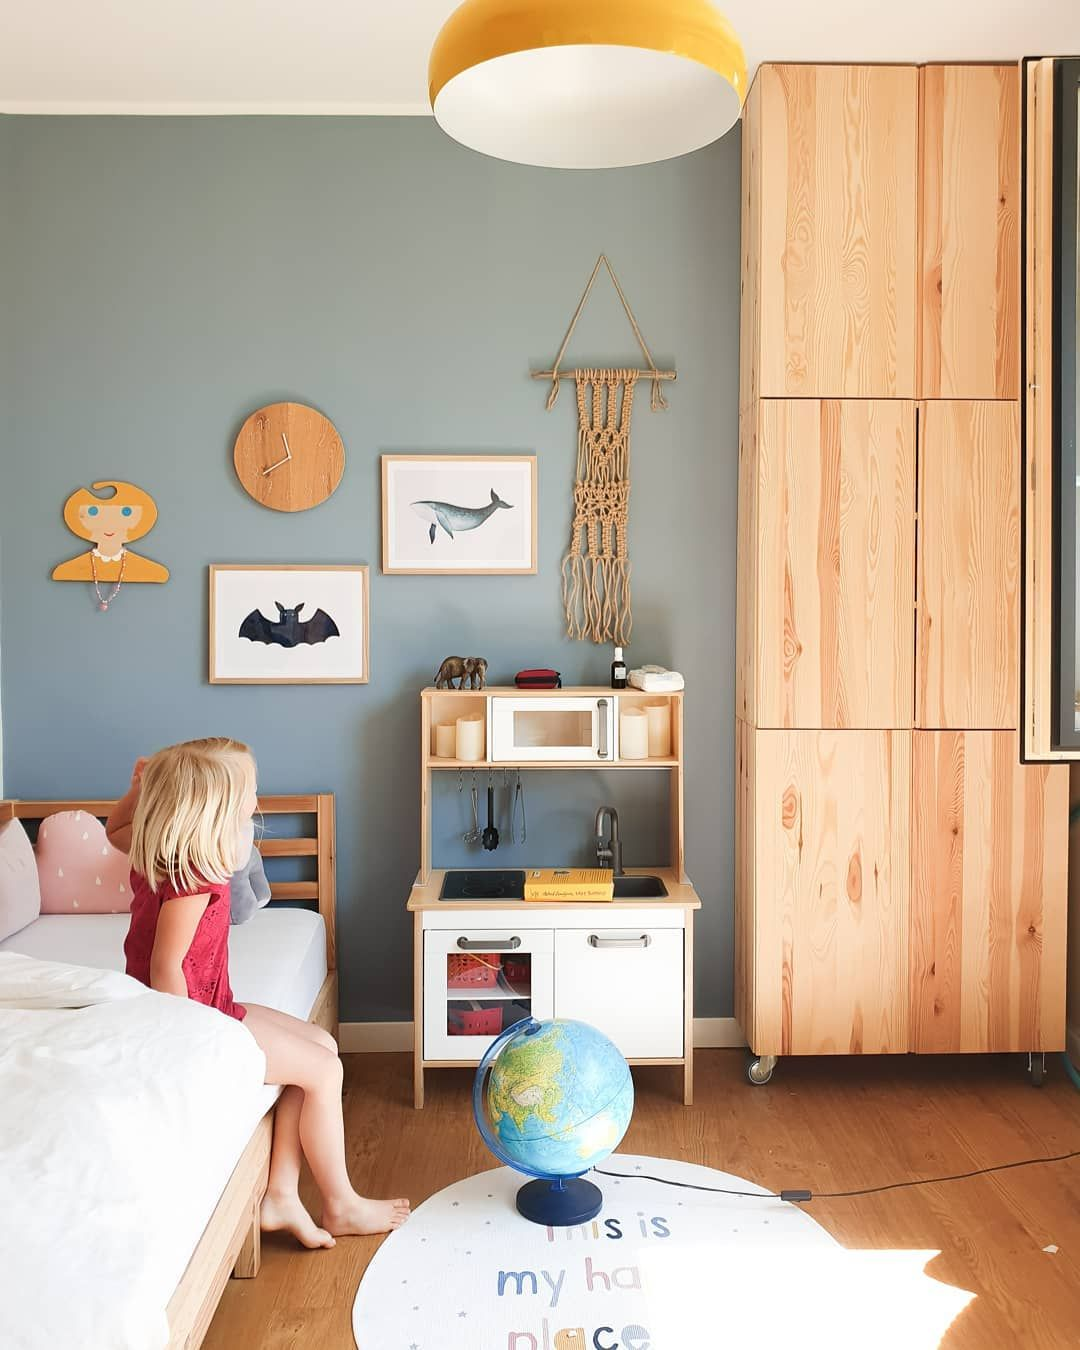 Pin von Dóra Szabó Kis auf Dream home kids room nursery